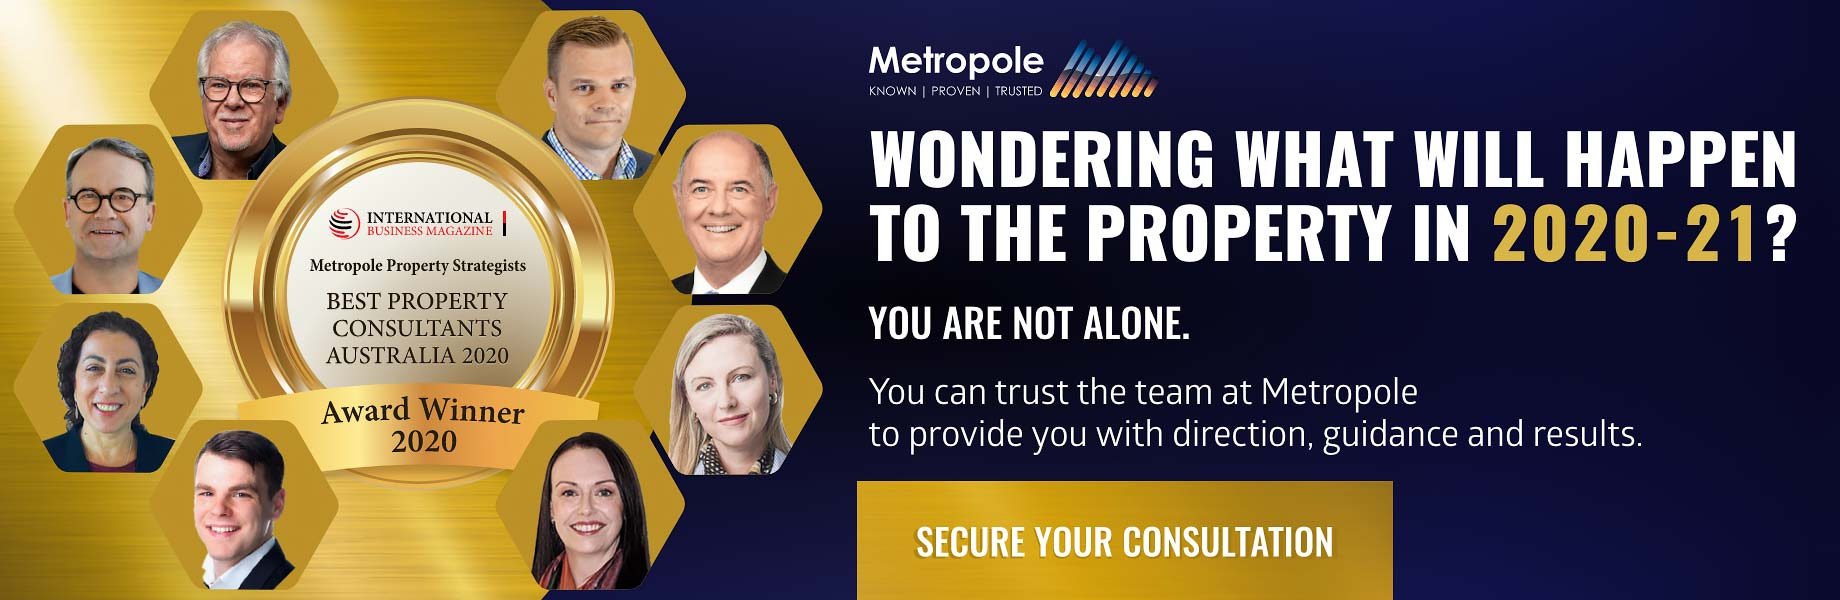 Get the team at Metropole on your side